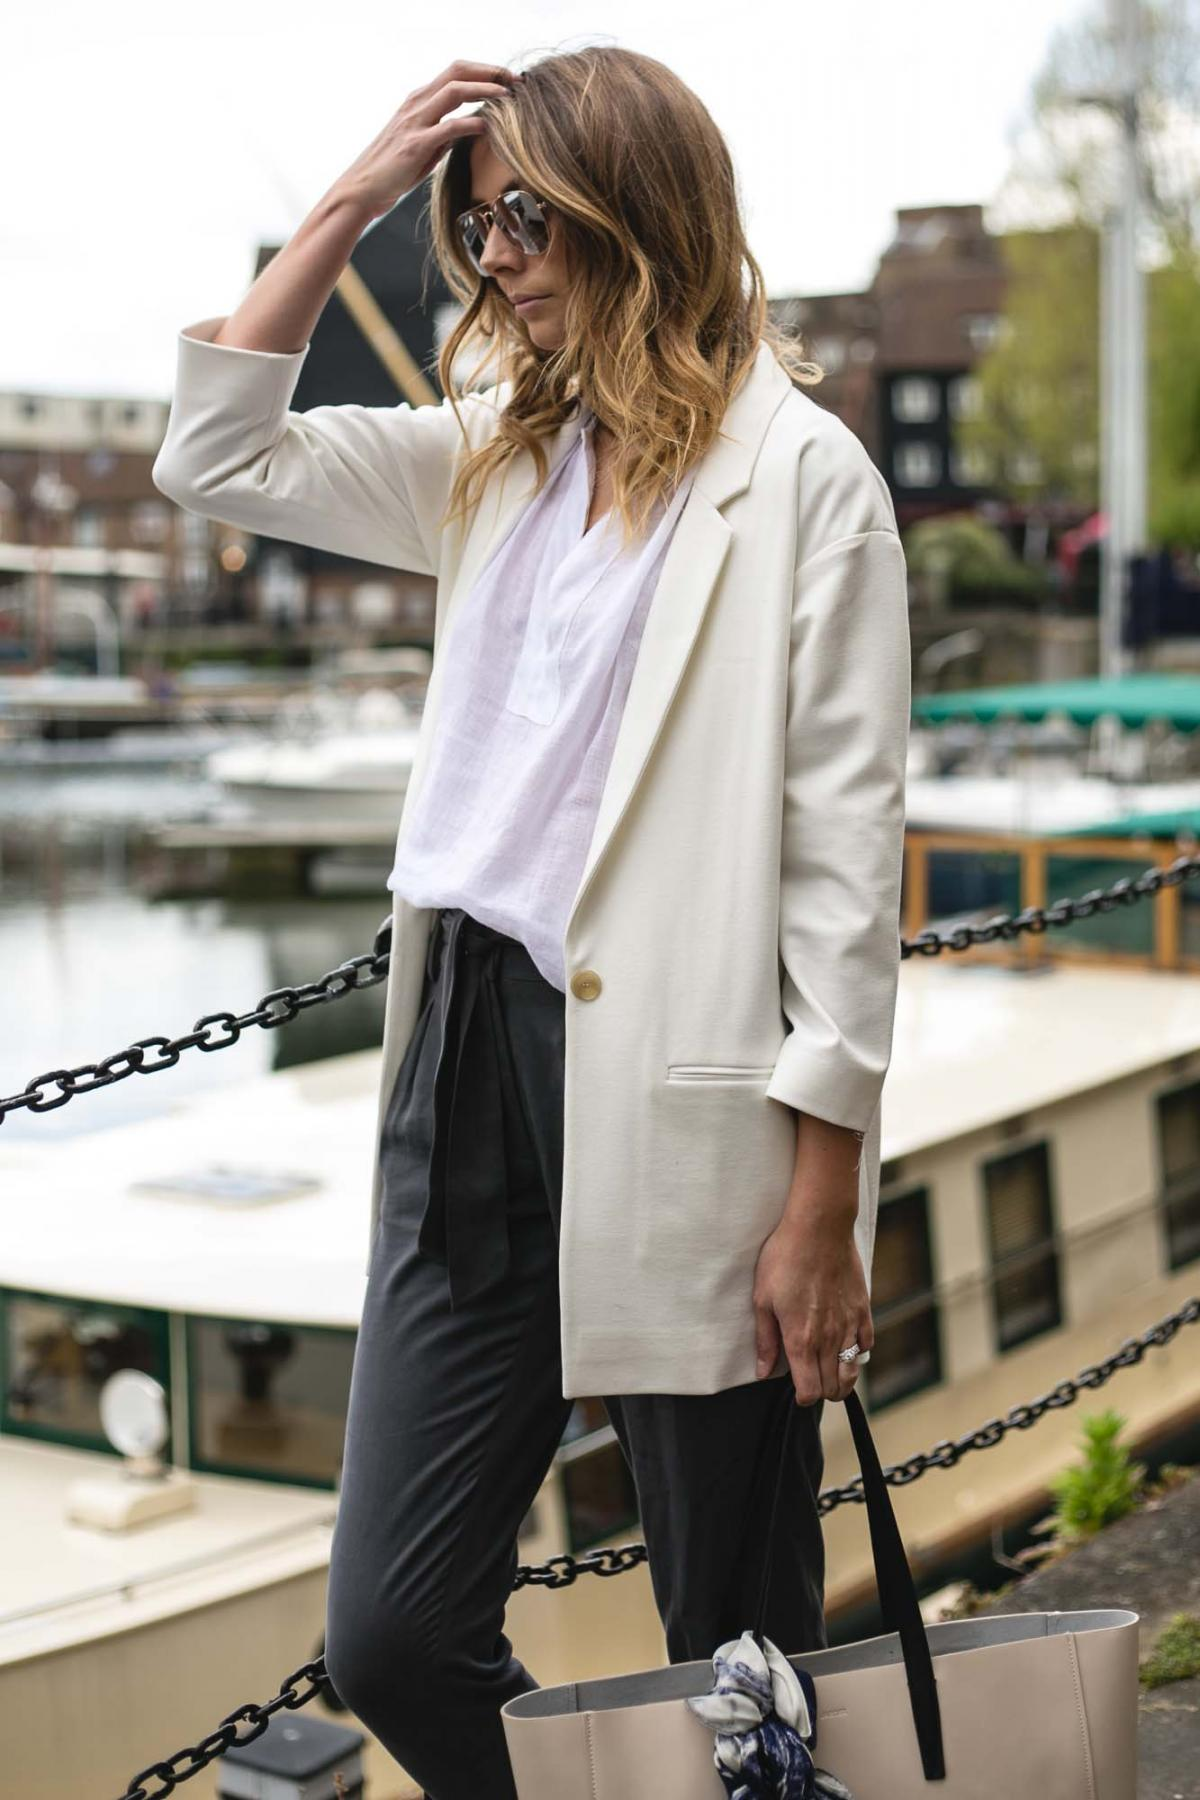 Jaeger off white blazer, grey trousers, white linen shirt, chic work outfit